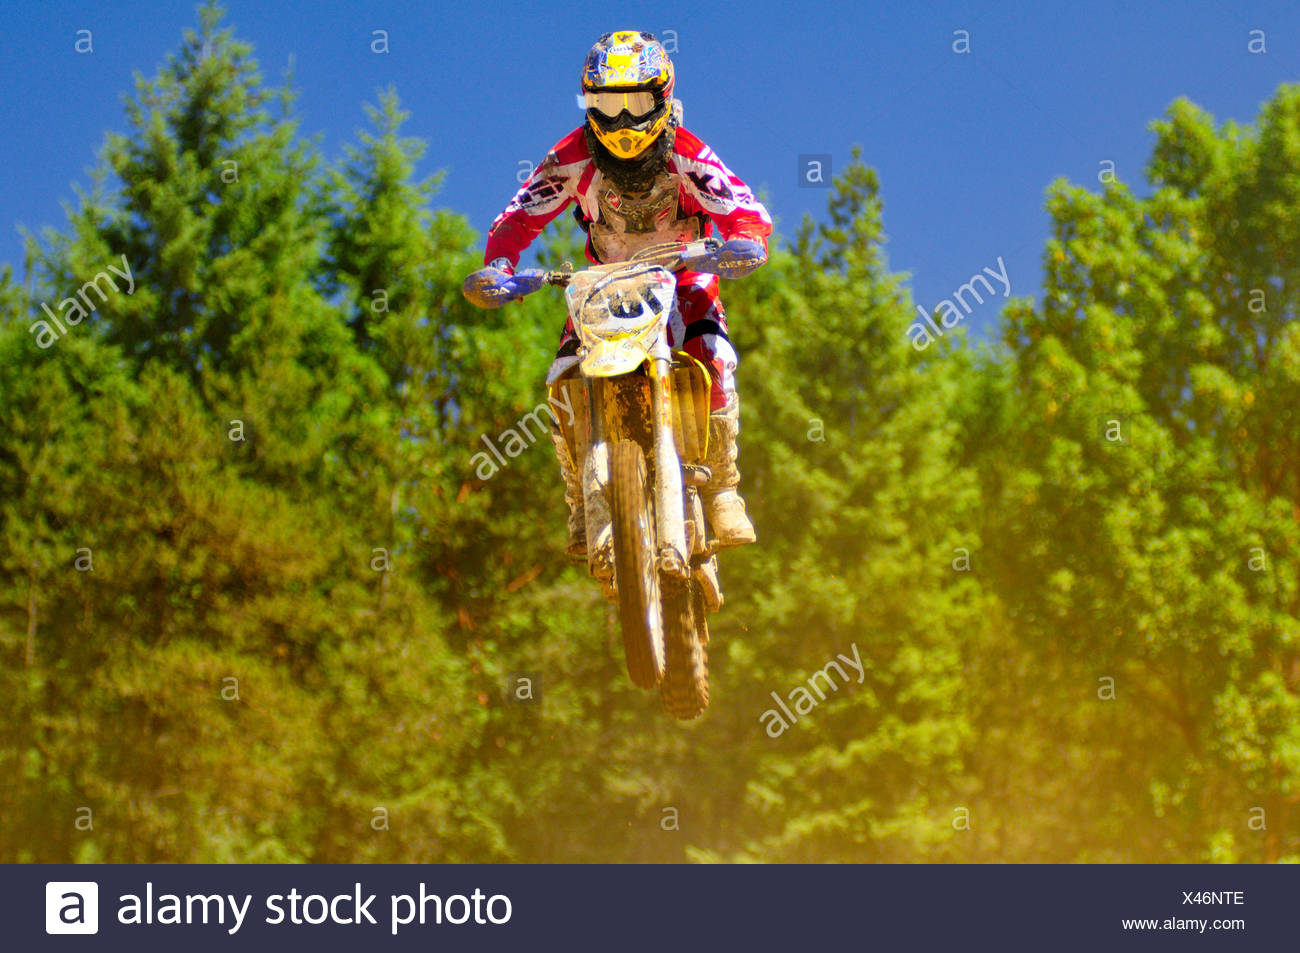 motocross racer at a jump during motocross action at the Wastelands in Nanaimo, BC. - Stock Image